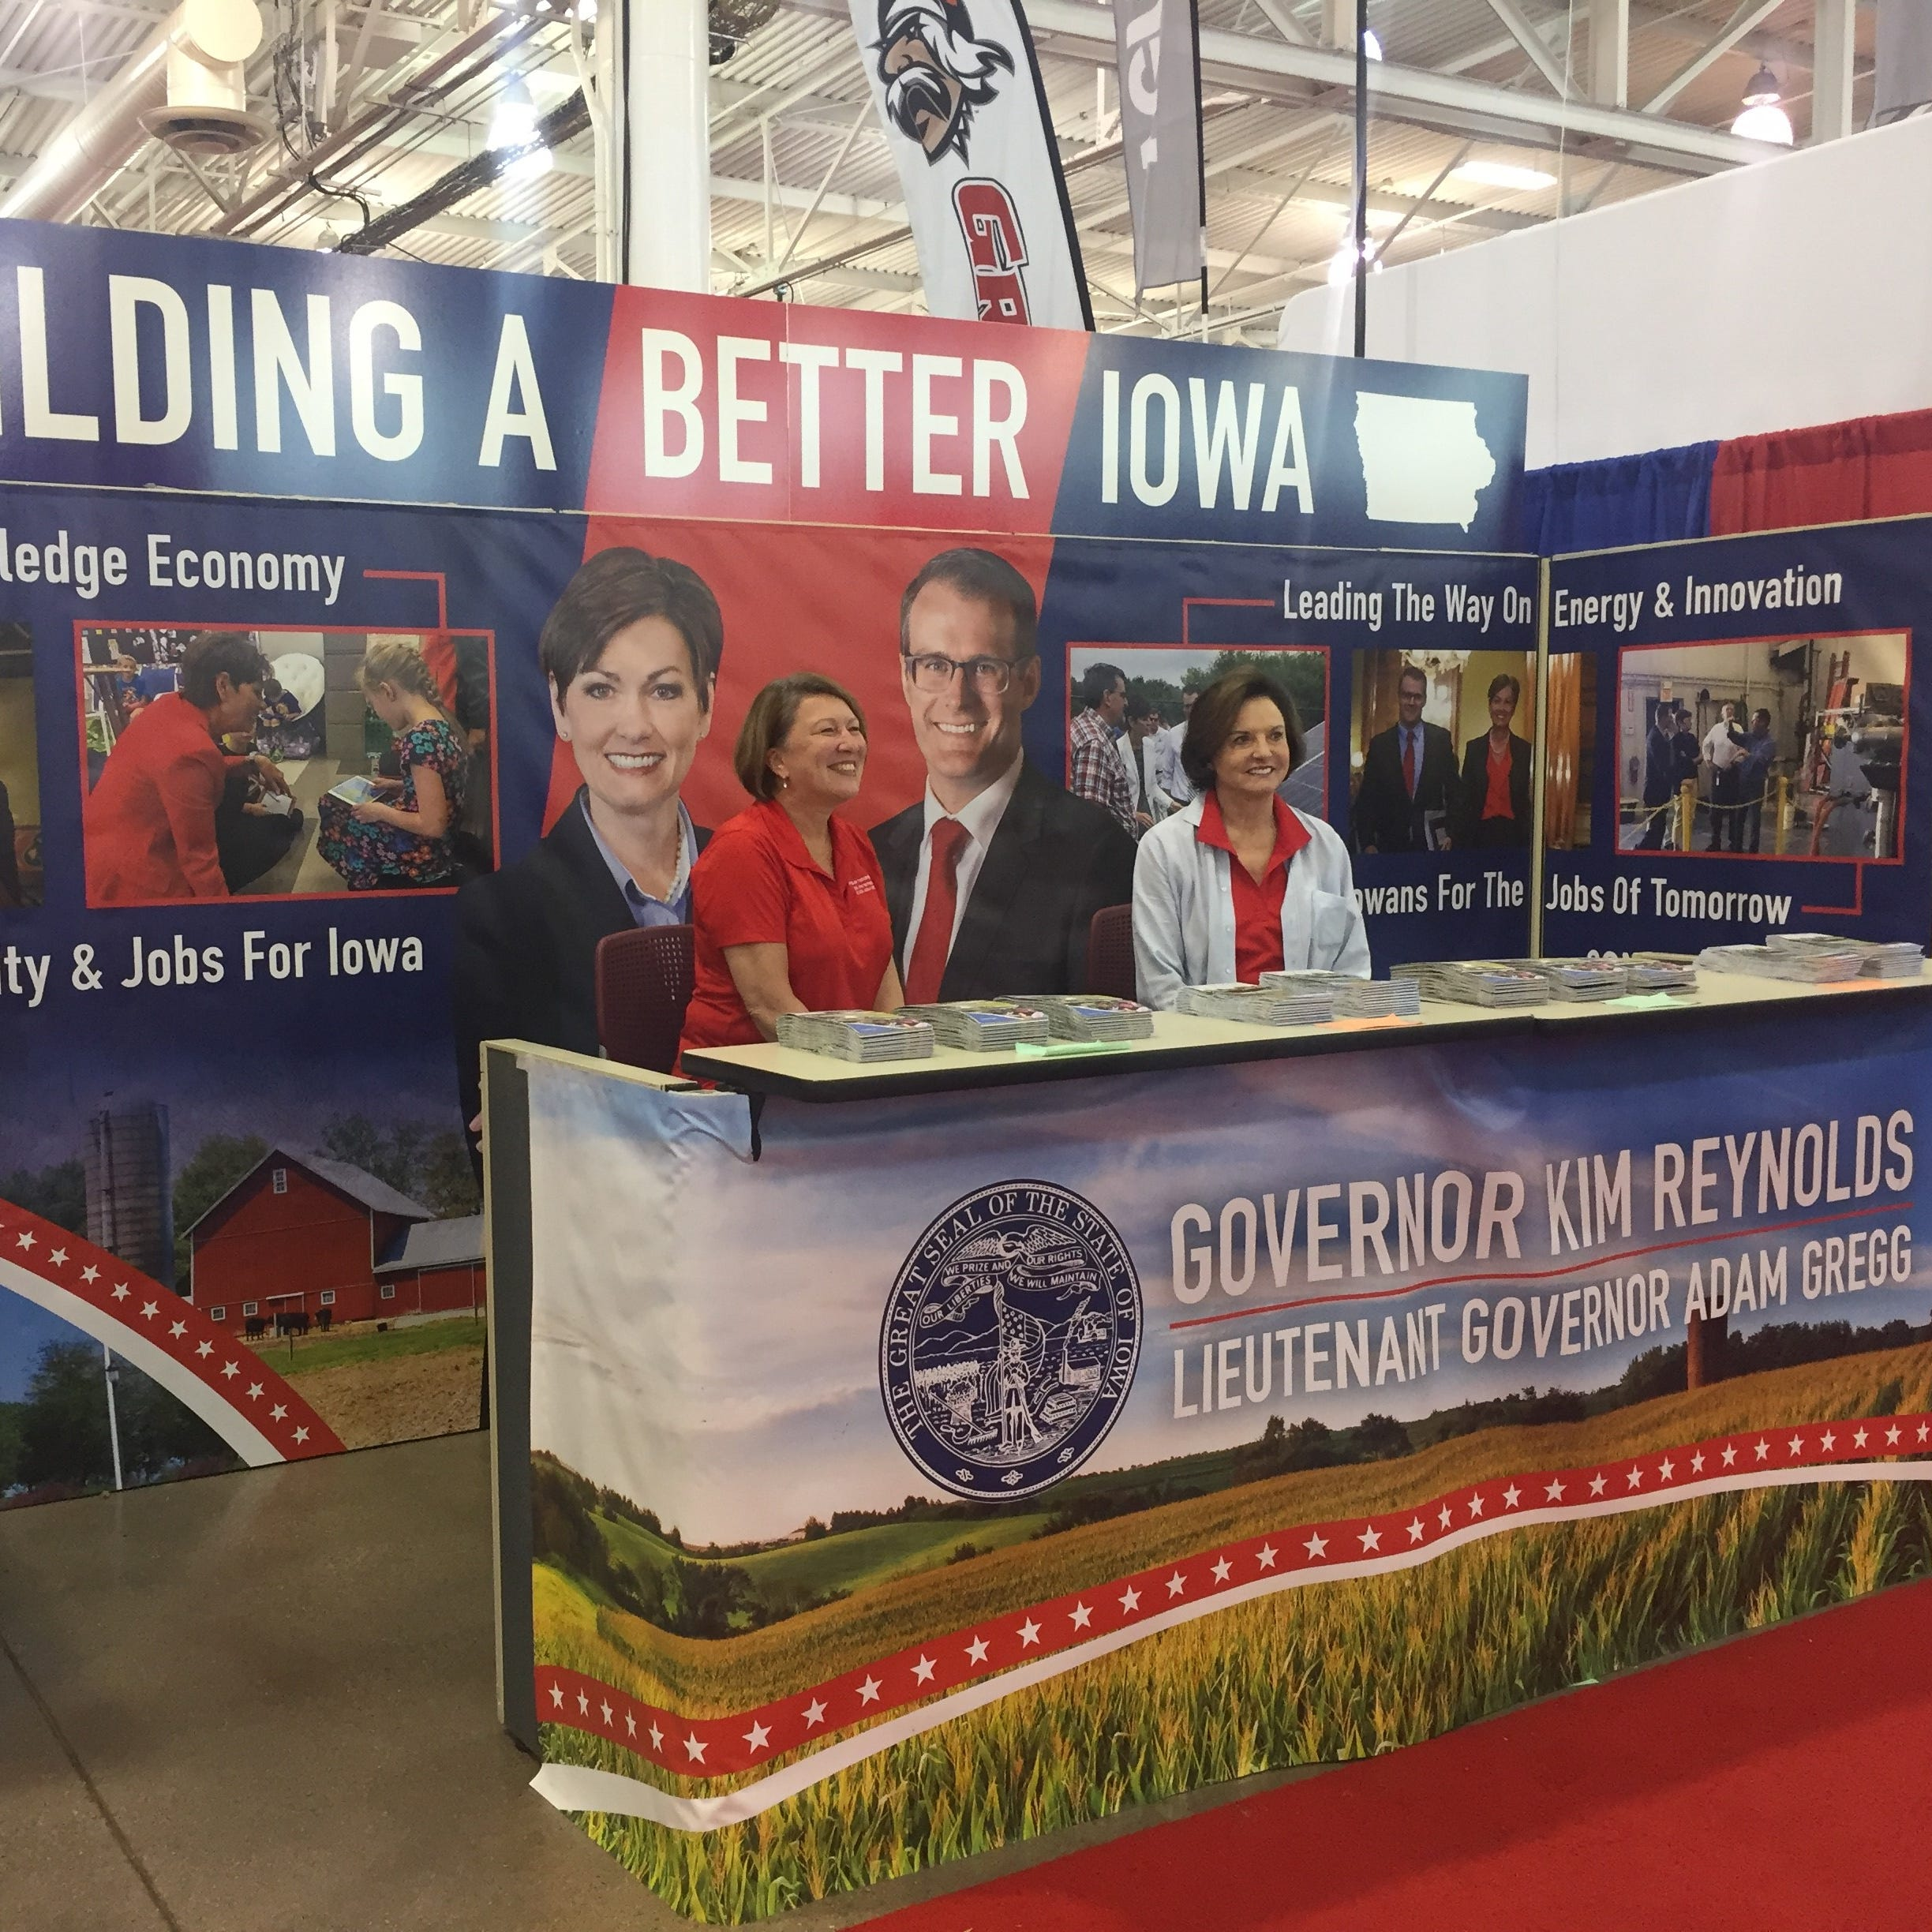 Kim Reynolds says reusing Iowa State Fair booth with her photos is OK, despite new law banning self-promotion